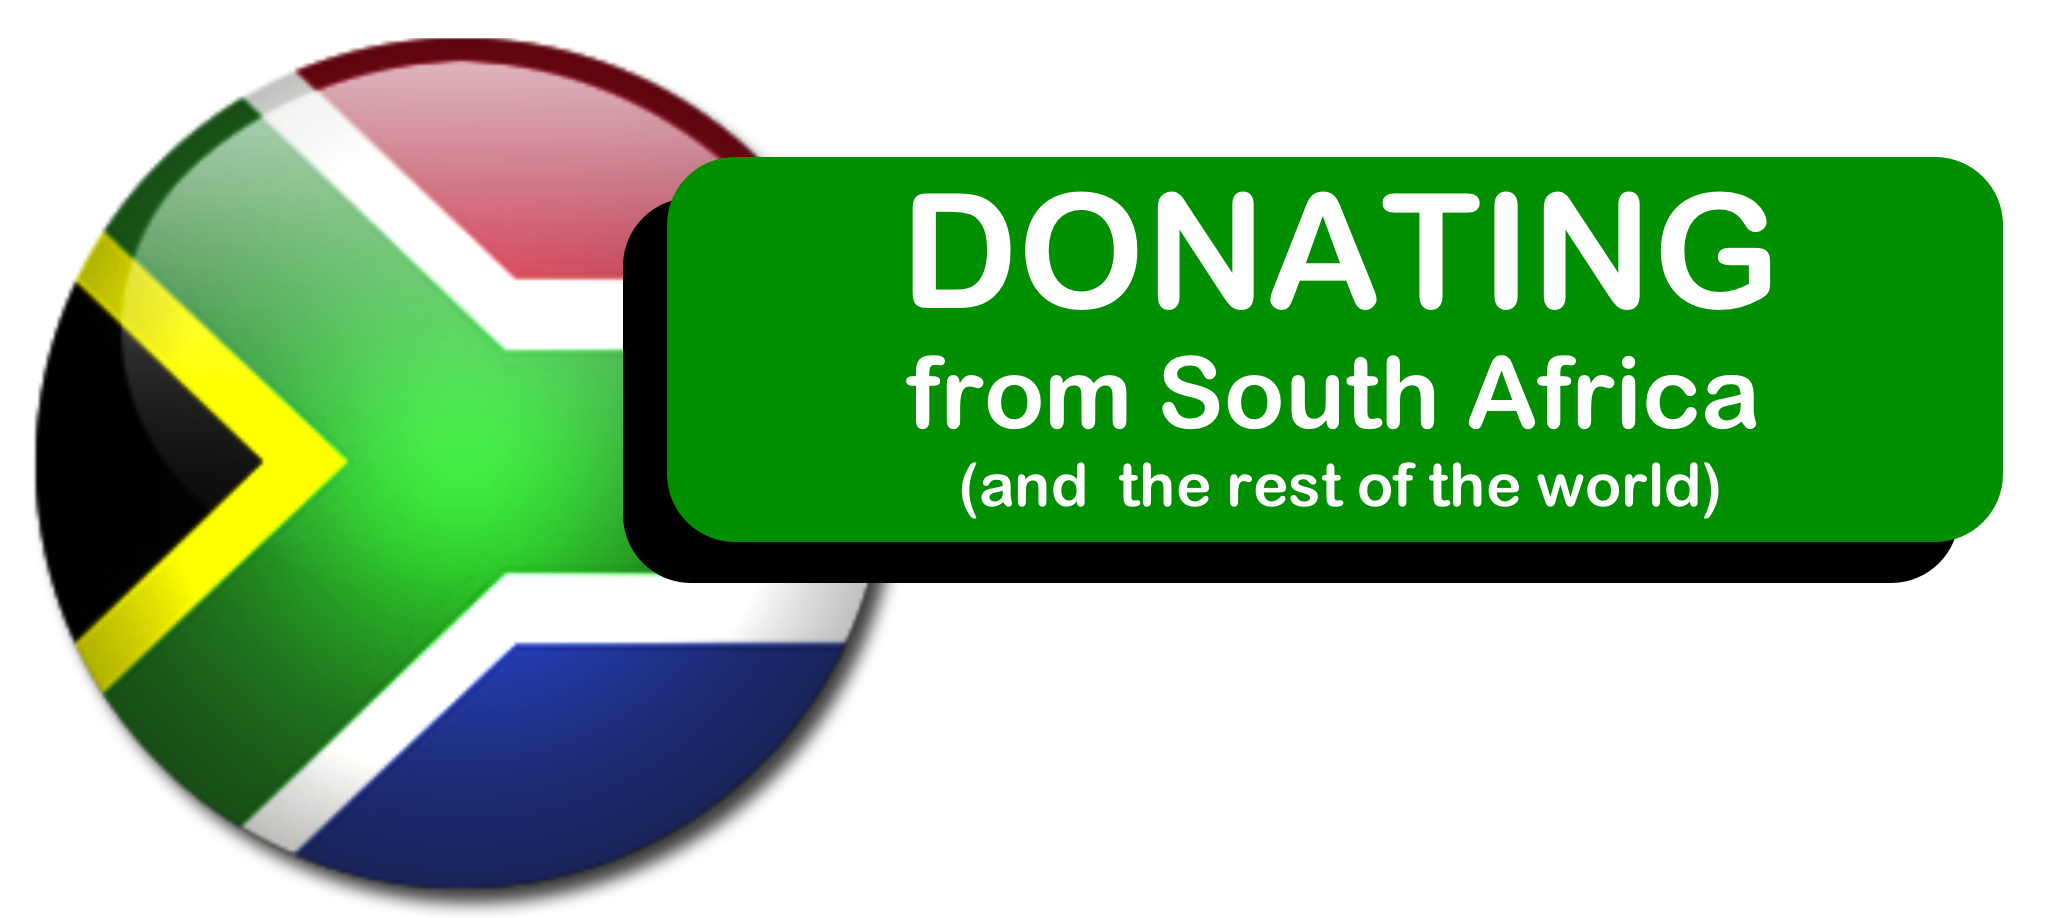 Donating from South Africa